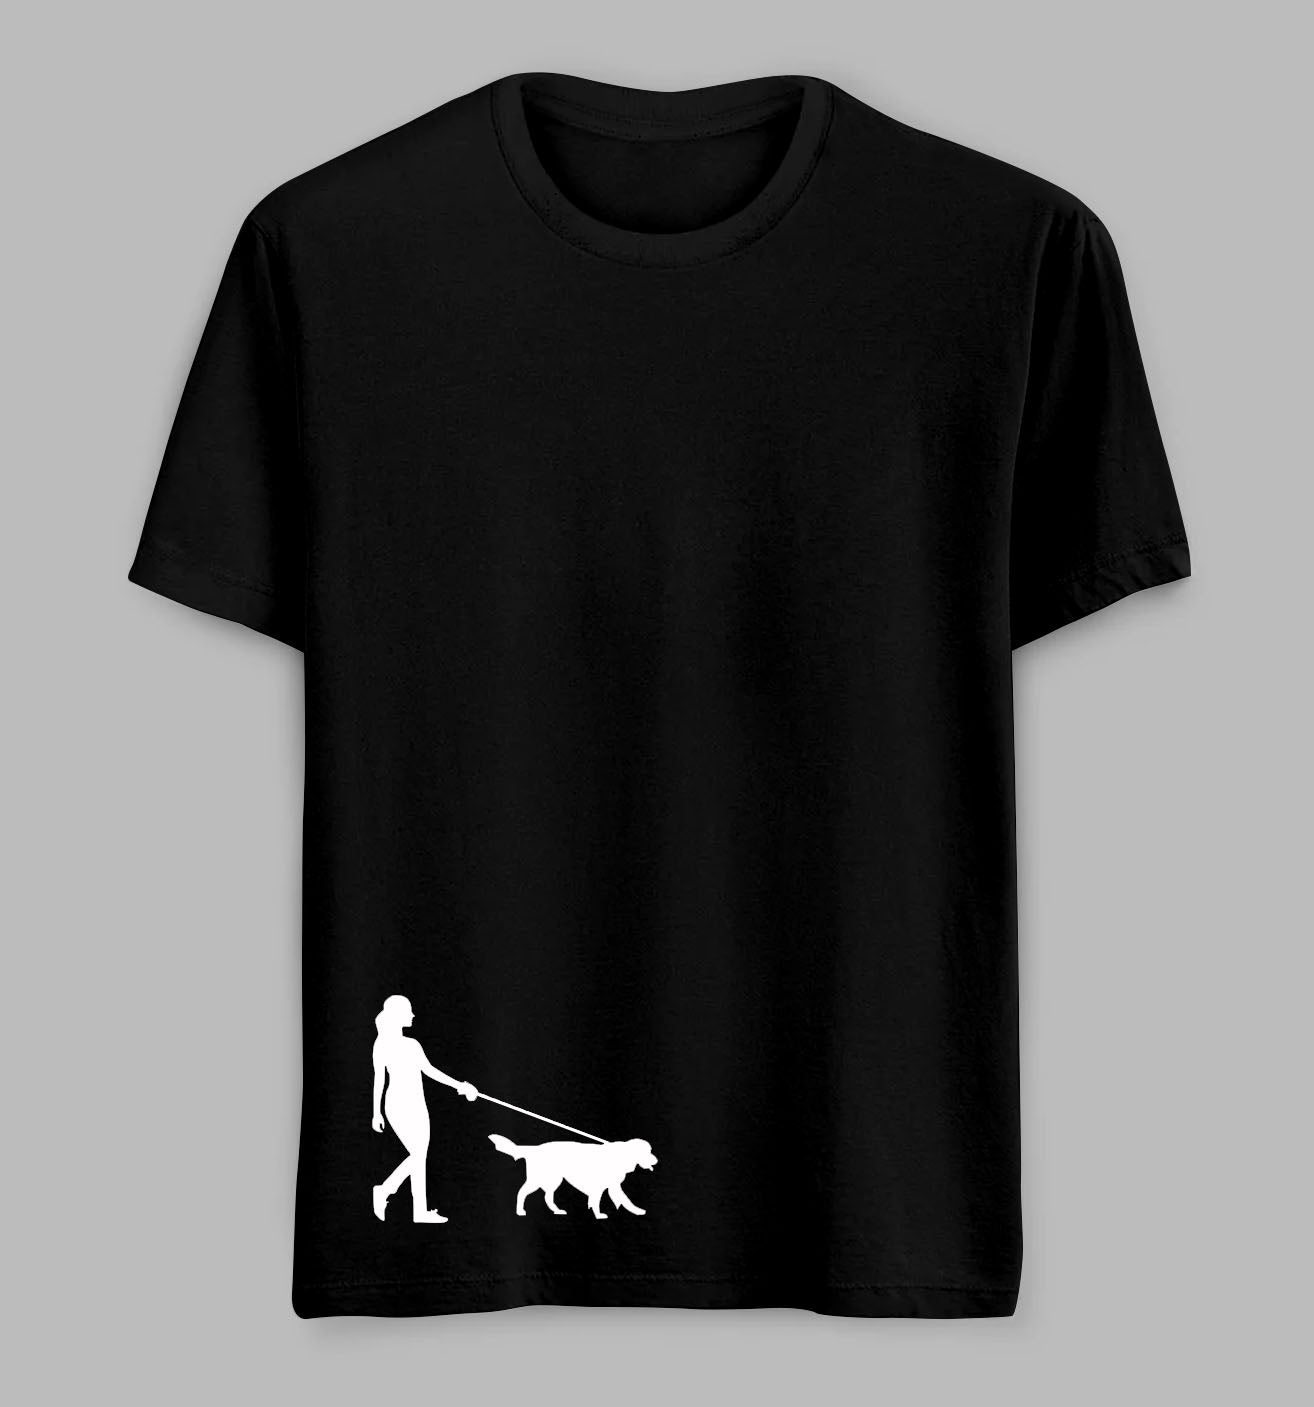 Puppy Girl Tees/ TShirts